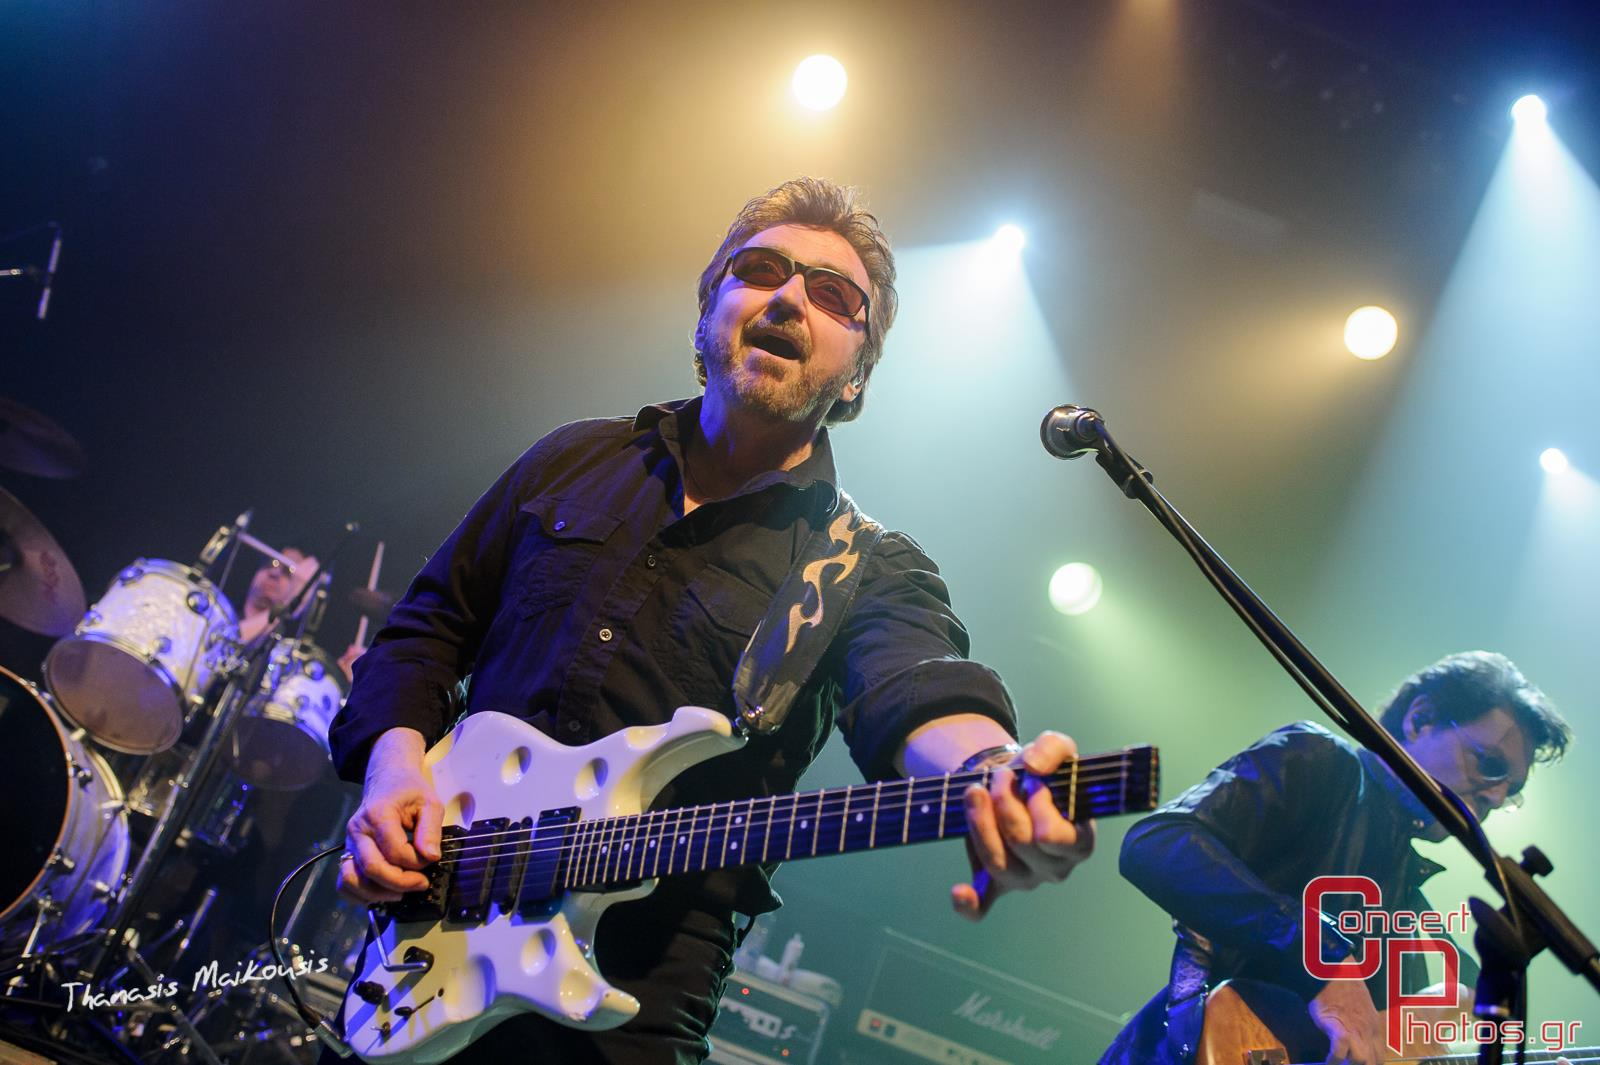 Blue Oyster Cult & Big Nose Attack-Blue Oyster Cult - Big Nose Attack photographer:  - ConcertPhotos-3105